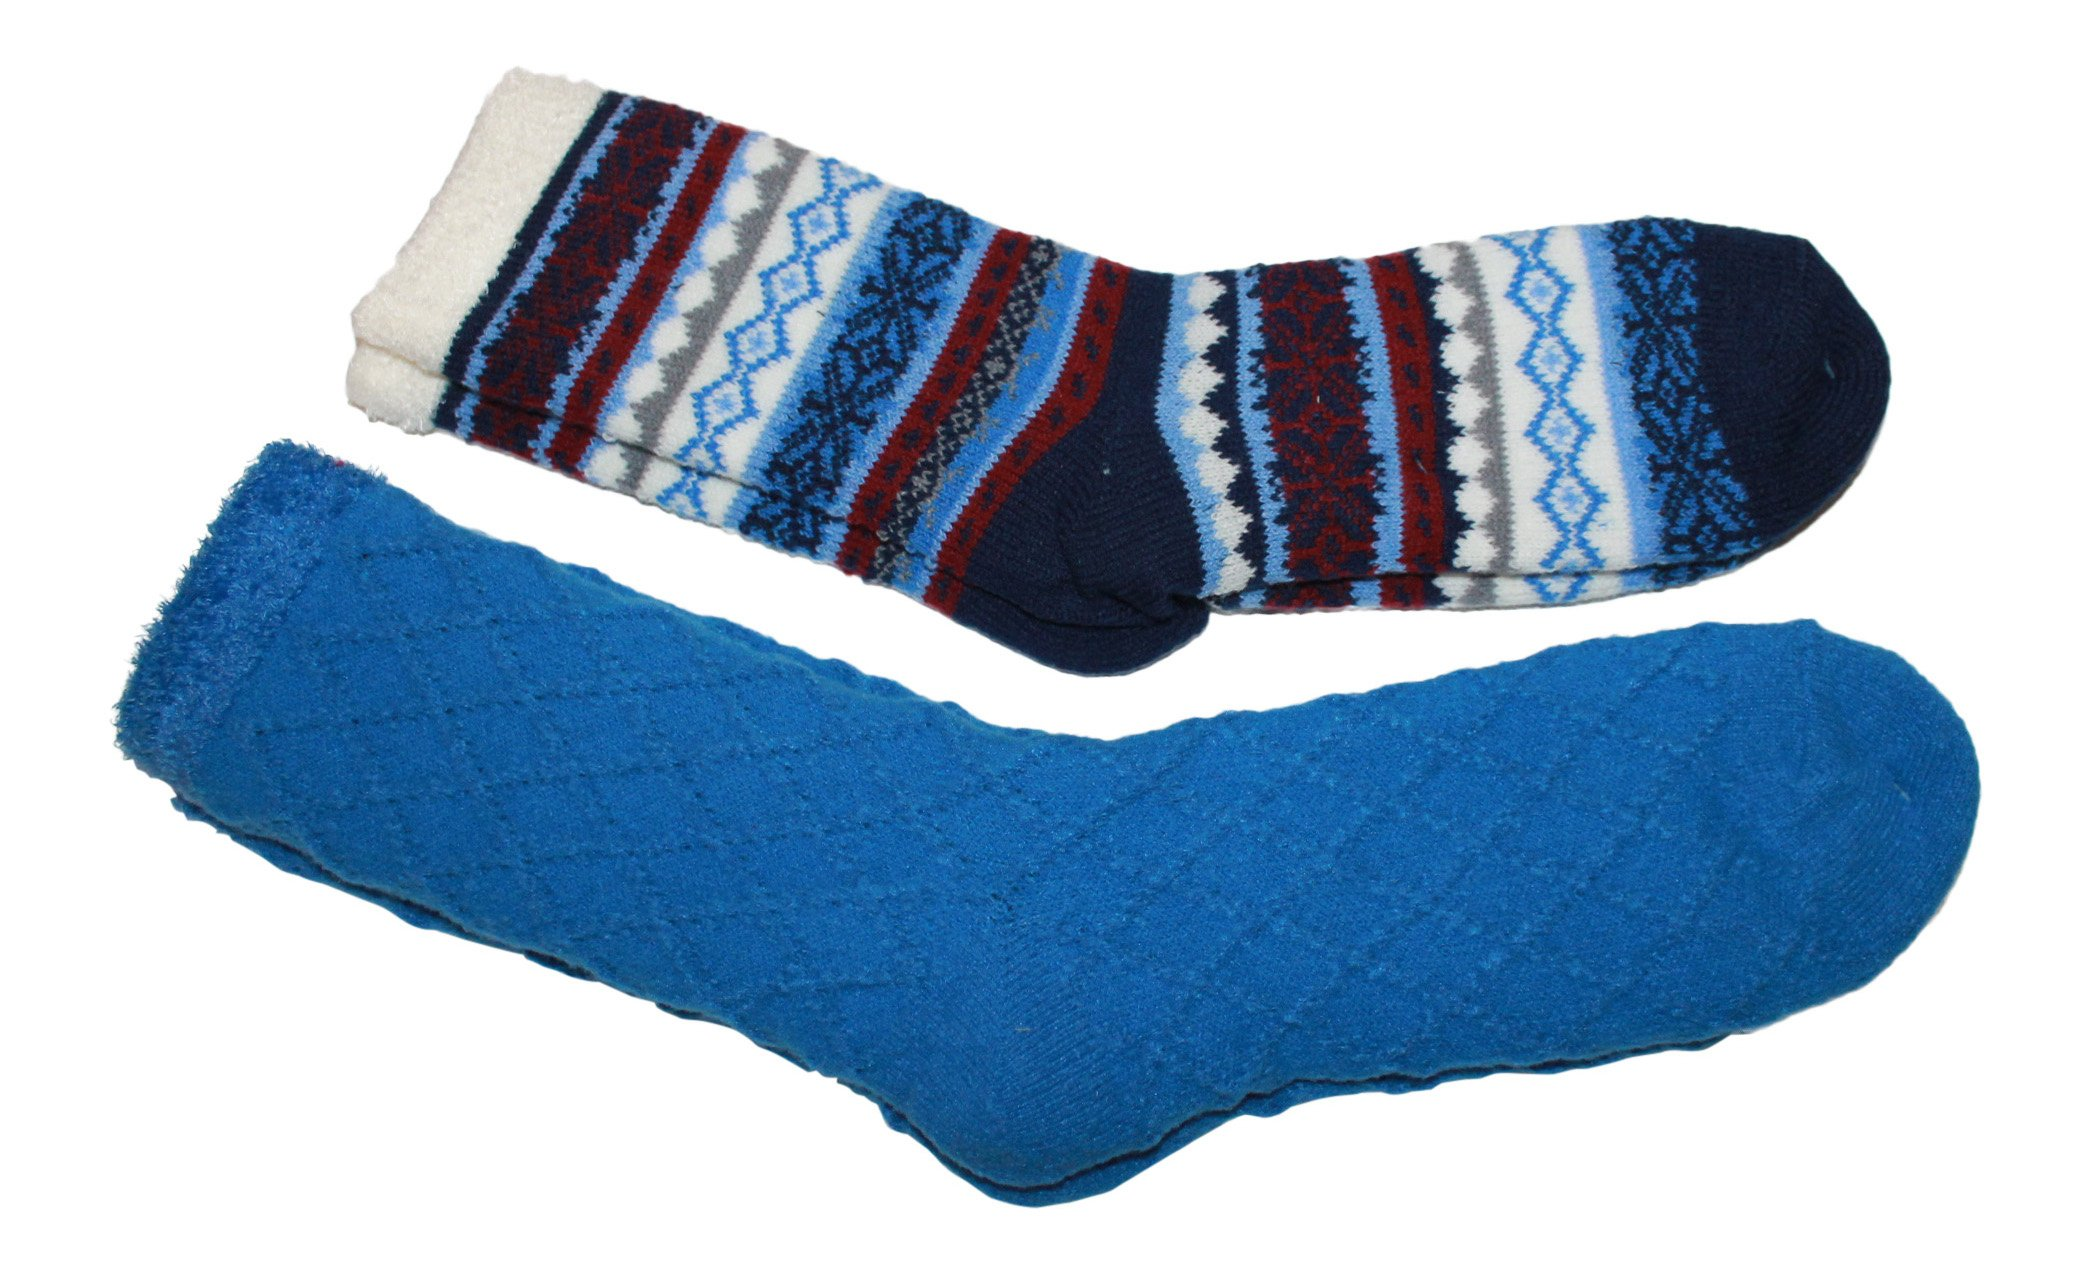 Cabin Socks Aloe Infused Double Layer 2 pack - 1 Nordic Pattern and 1 Solid (Blue)